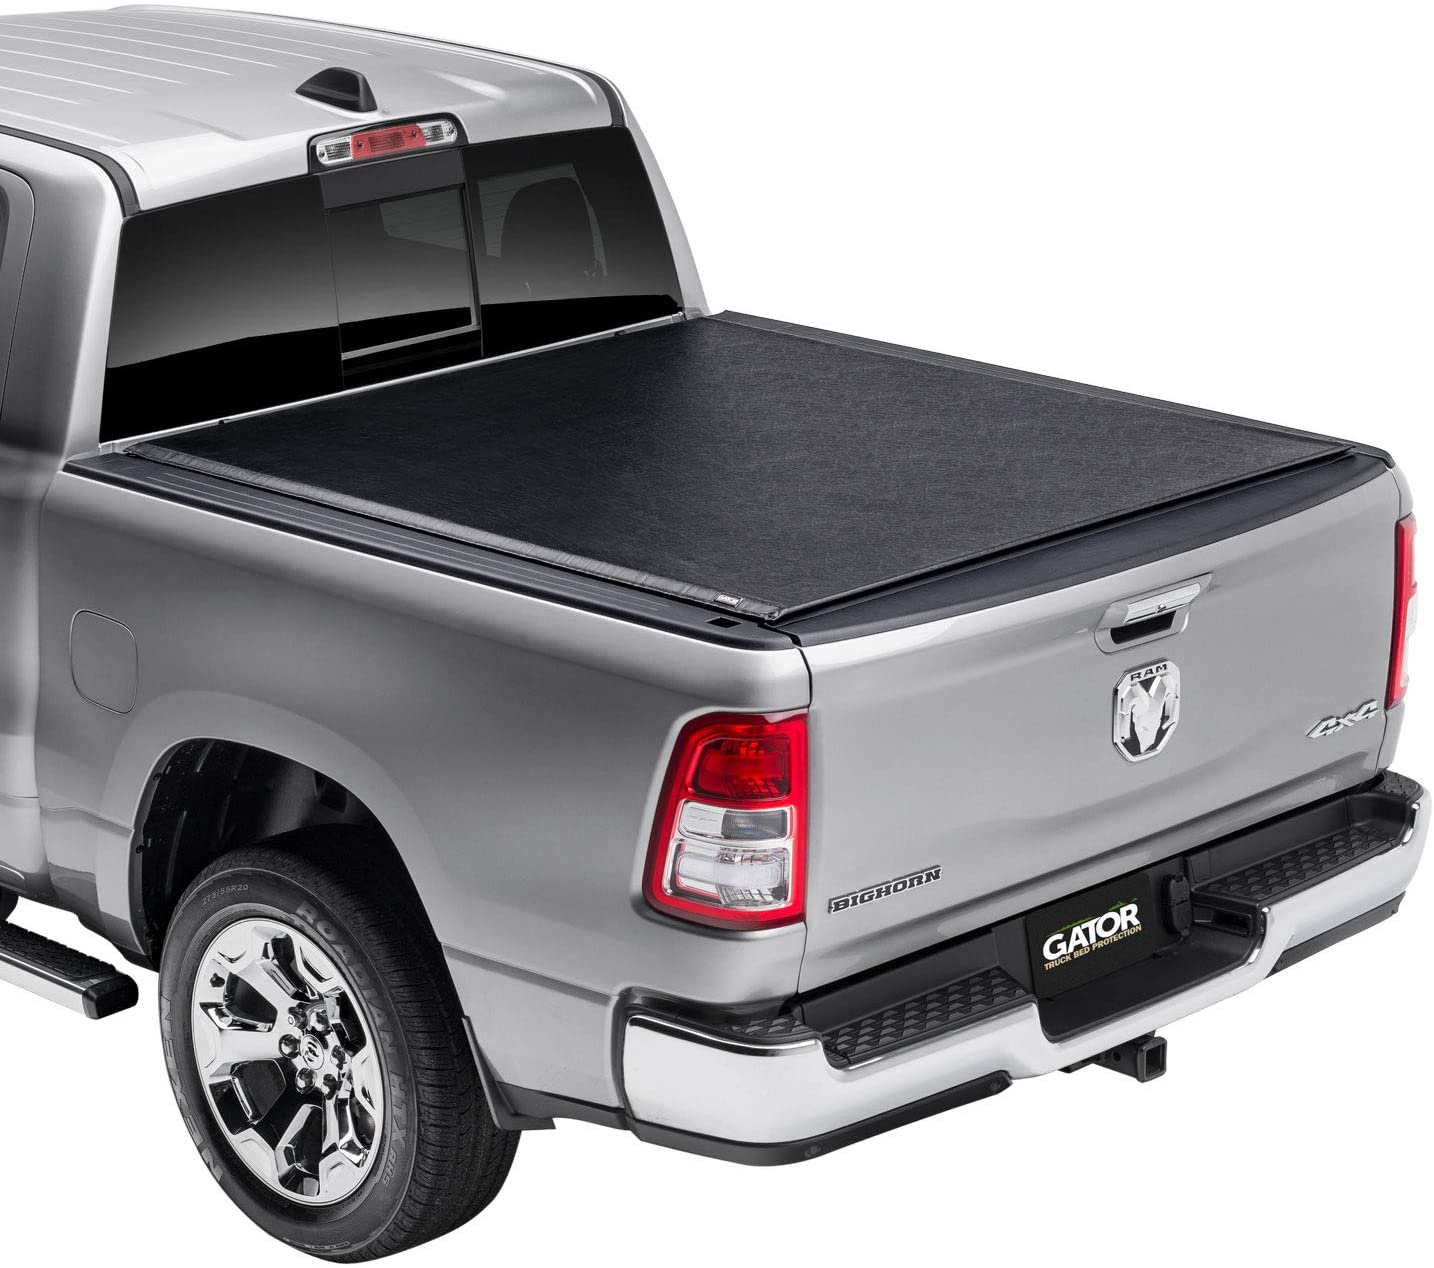 Amazon Com Gator Etx Soft Roll Up 5 7 Truck Bed Tonneau Cover 53204 Fits 2009 2018 2019 2020 Classic Ram 1500 Made In The Usa Automotive